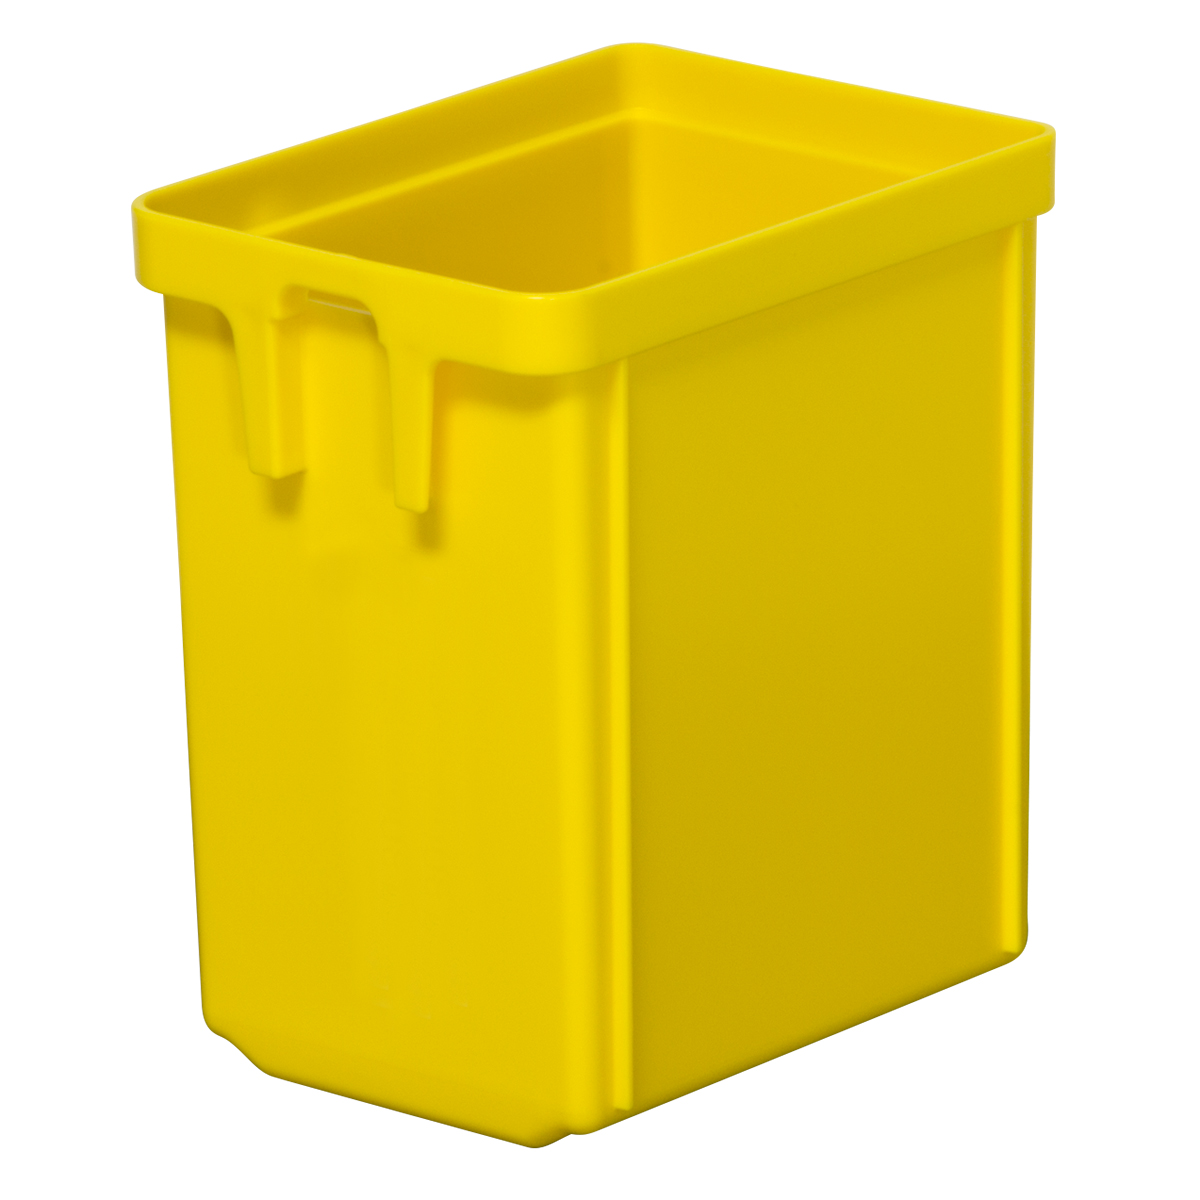 Mulit-Load Tote 1/8 Cup, Yellow (38008YEL).  This item sold in carton quantities of 12.